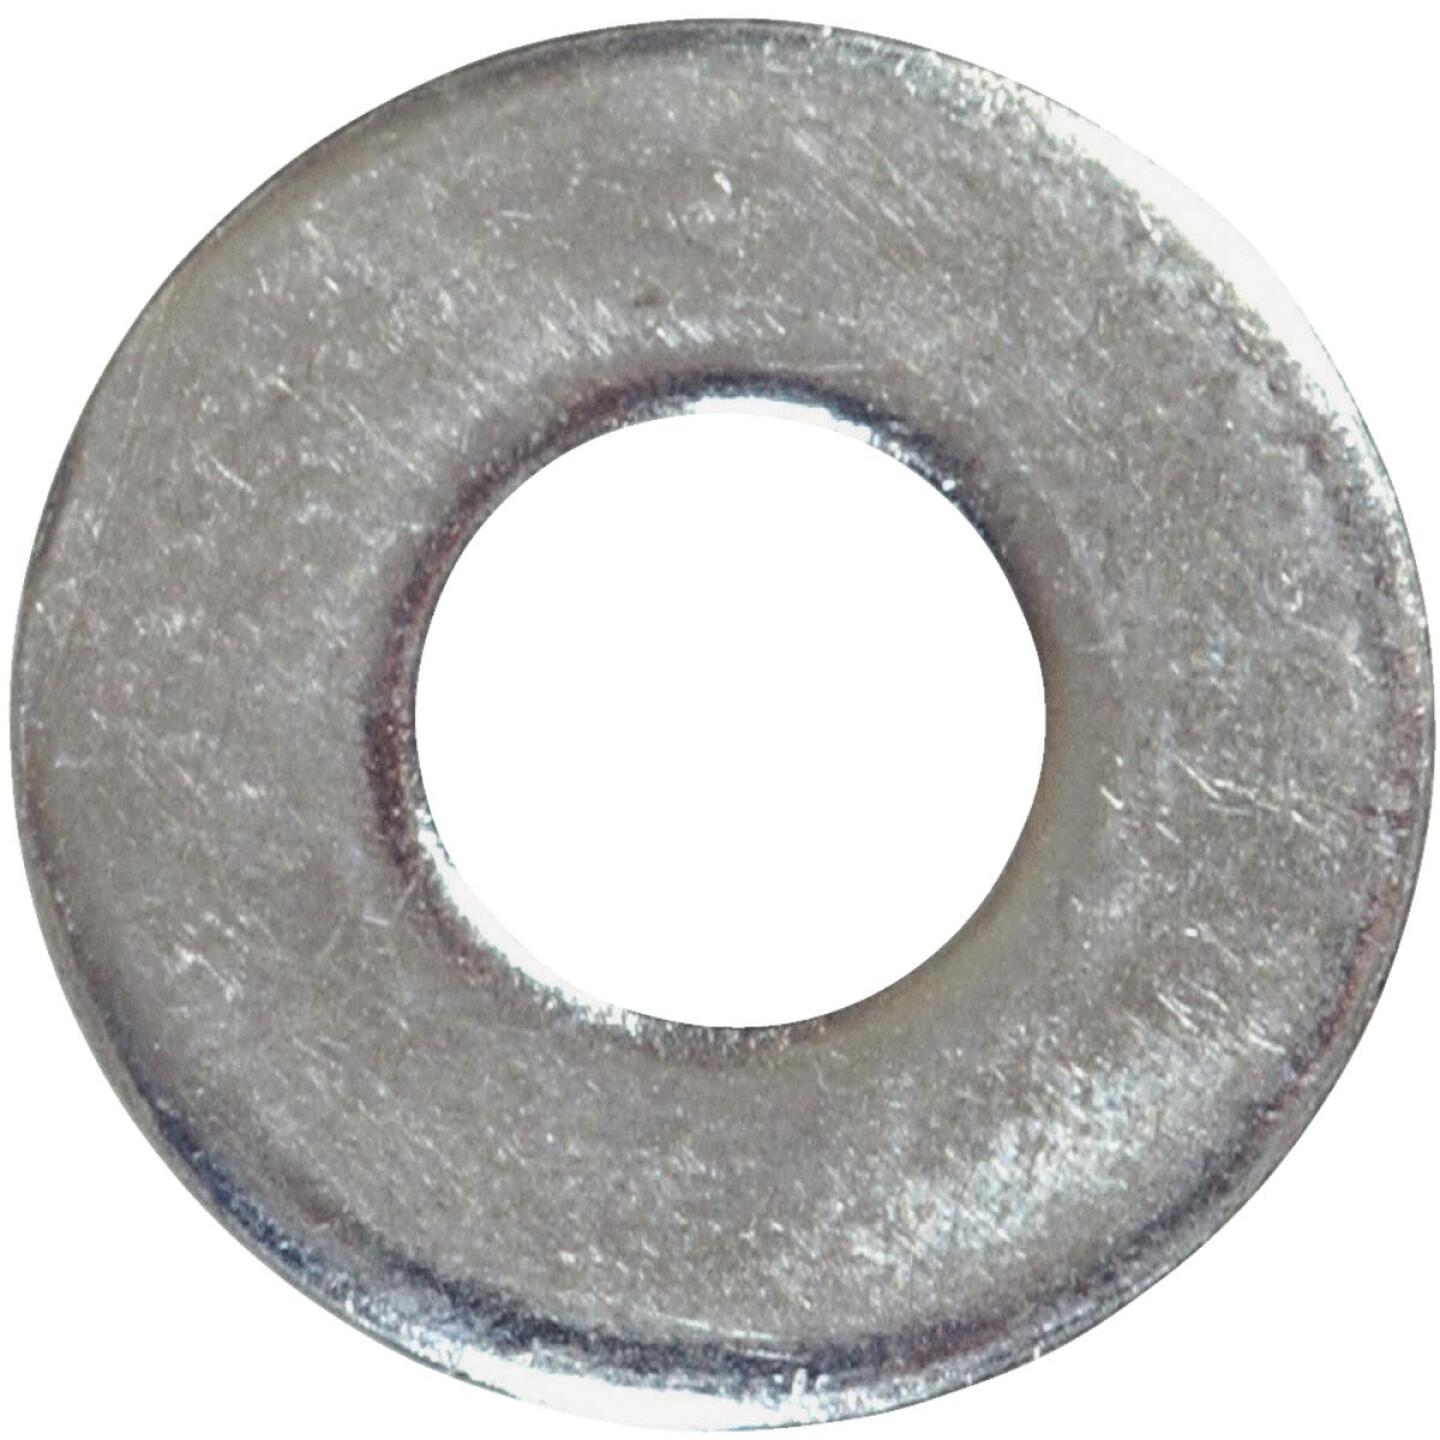 Hillman 5/8 In. Steel Zinc Plated Flat USS Washer (25 Ct.) Image 1